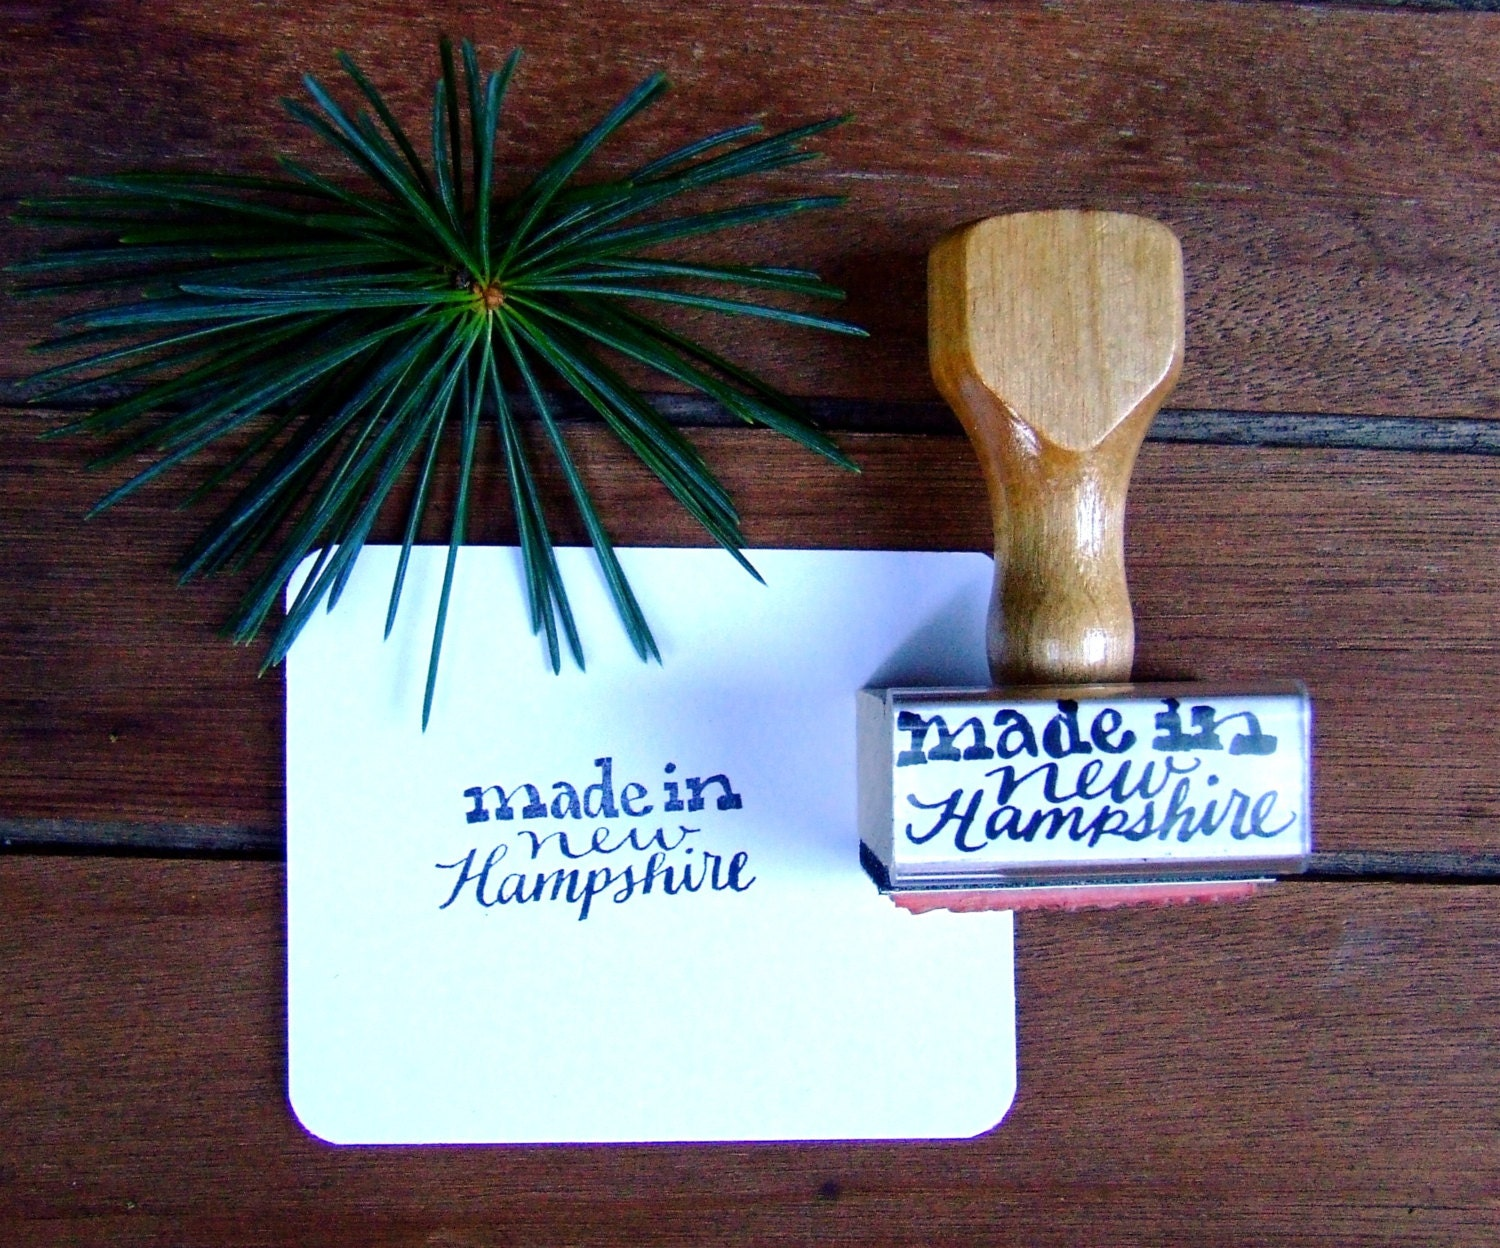 Made in new hampshire modern calligraphy stamp card